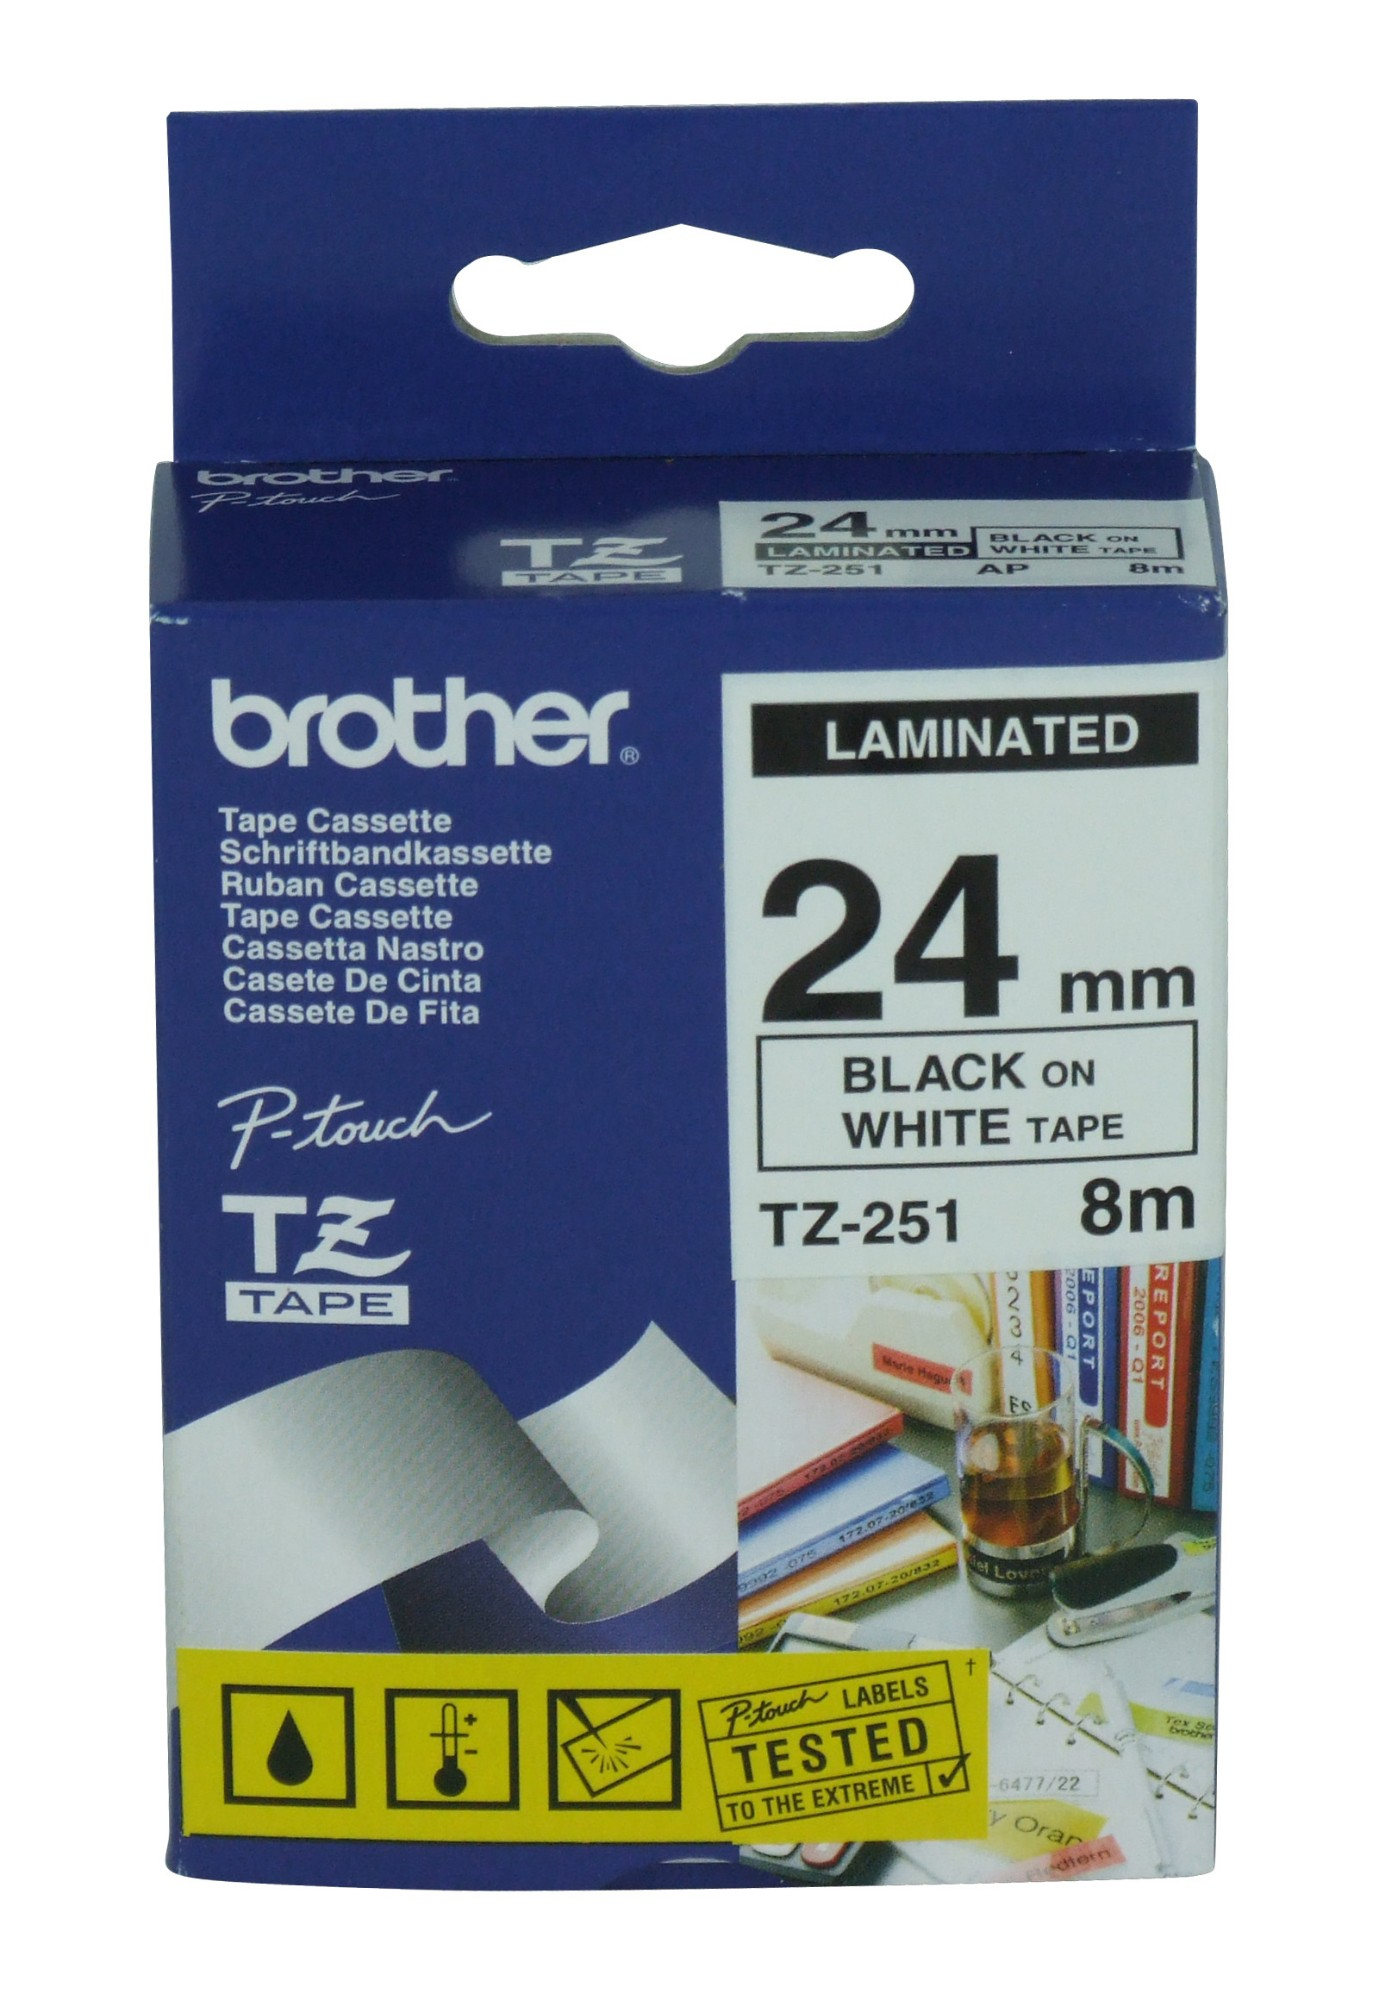 Tape 24mm Lami Black On White (tz251)